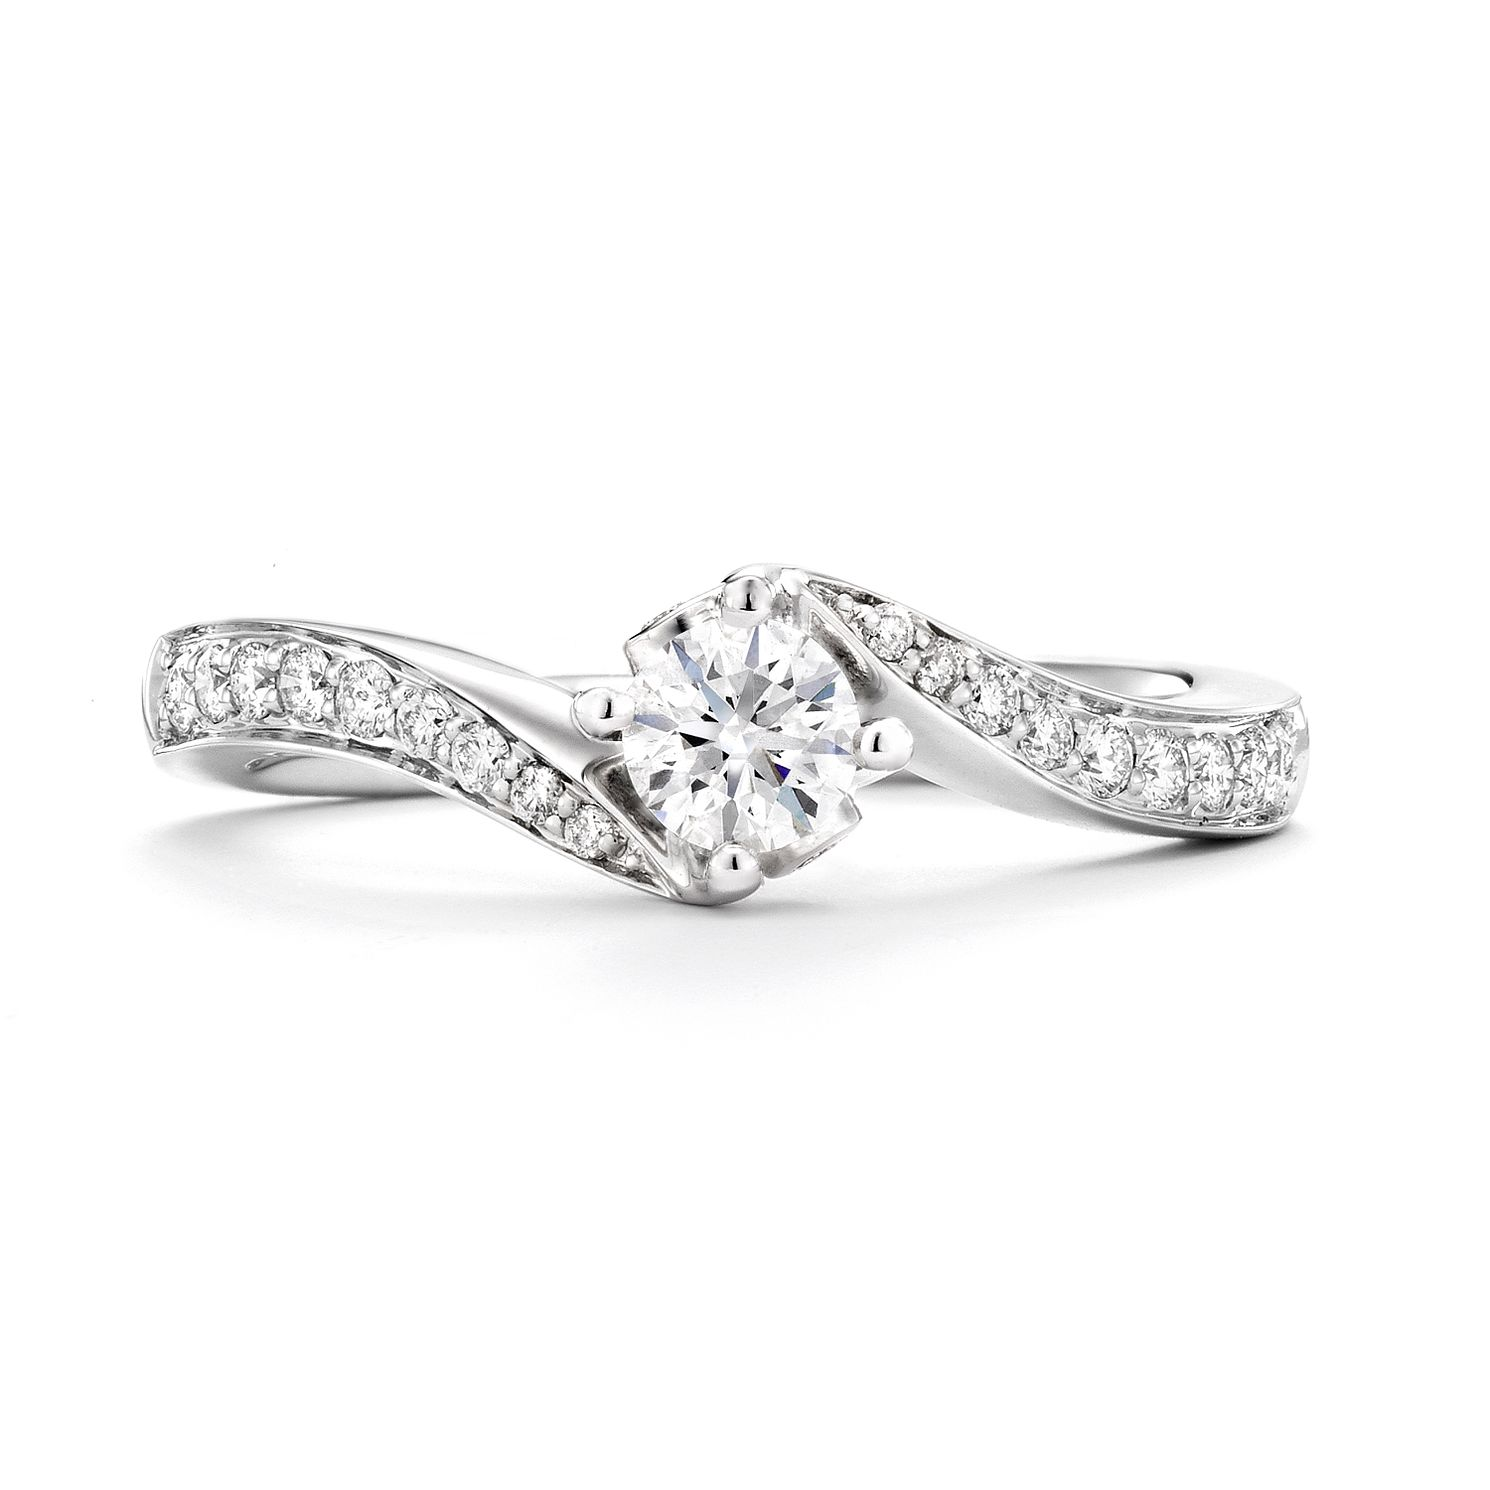 Tolkowsky 18ct White Gold 1/3ct Diamond Ring - Product number 4771524